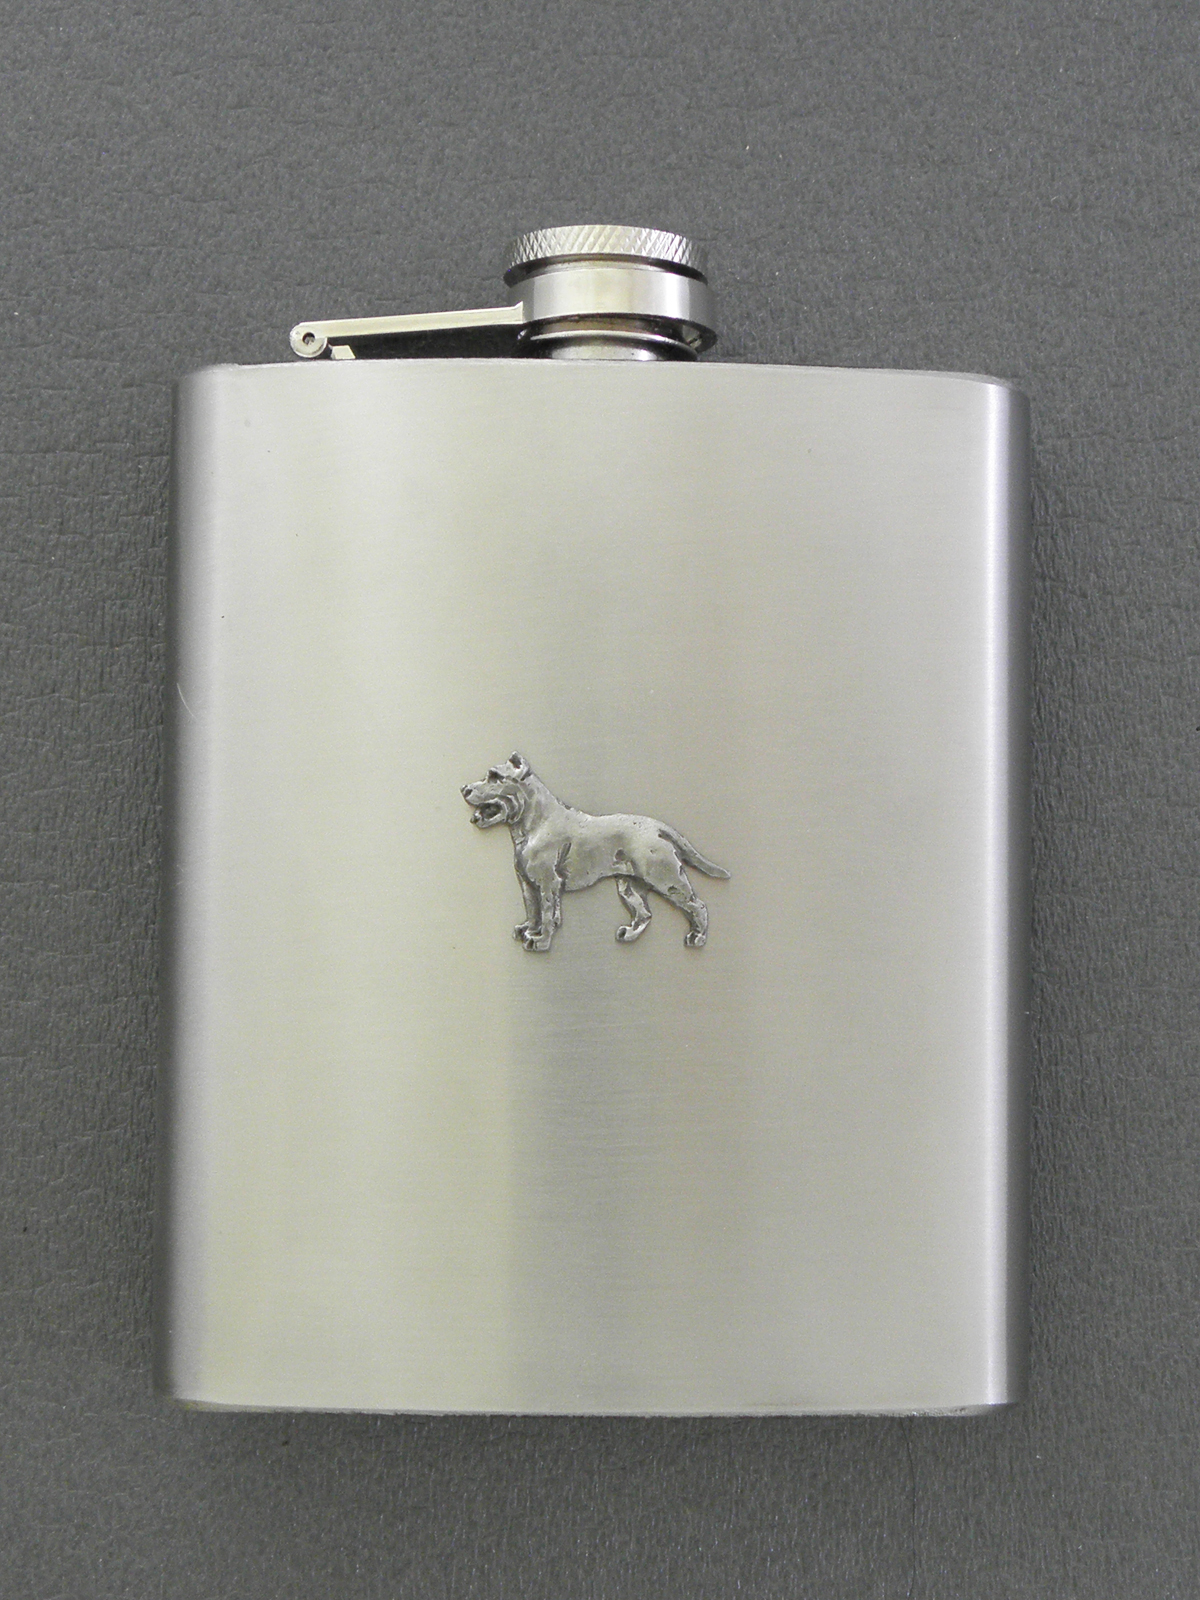 American Staffordshire Terrier - Hip Flask Figure